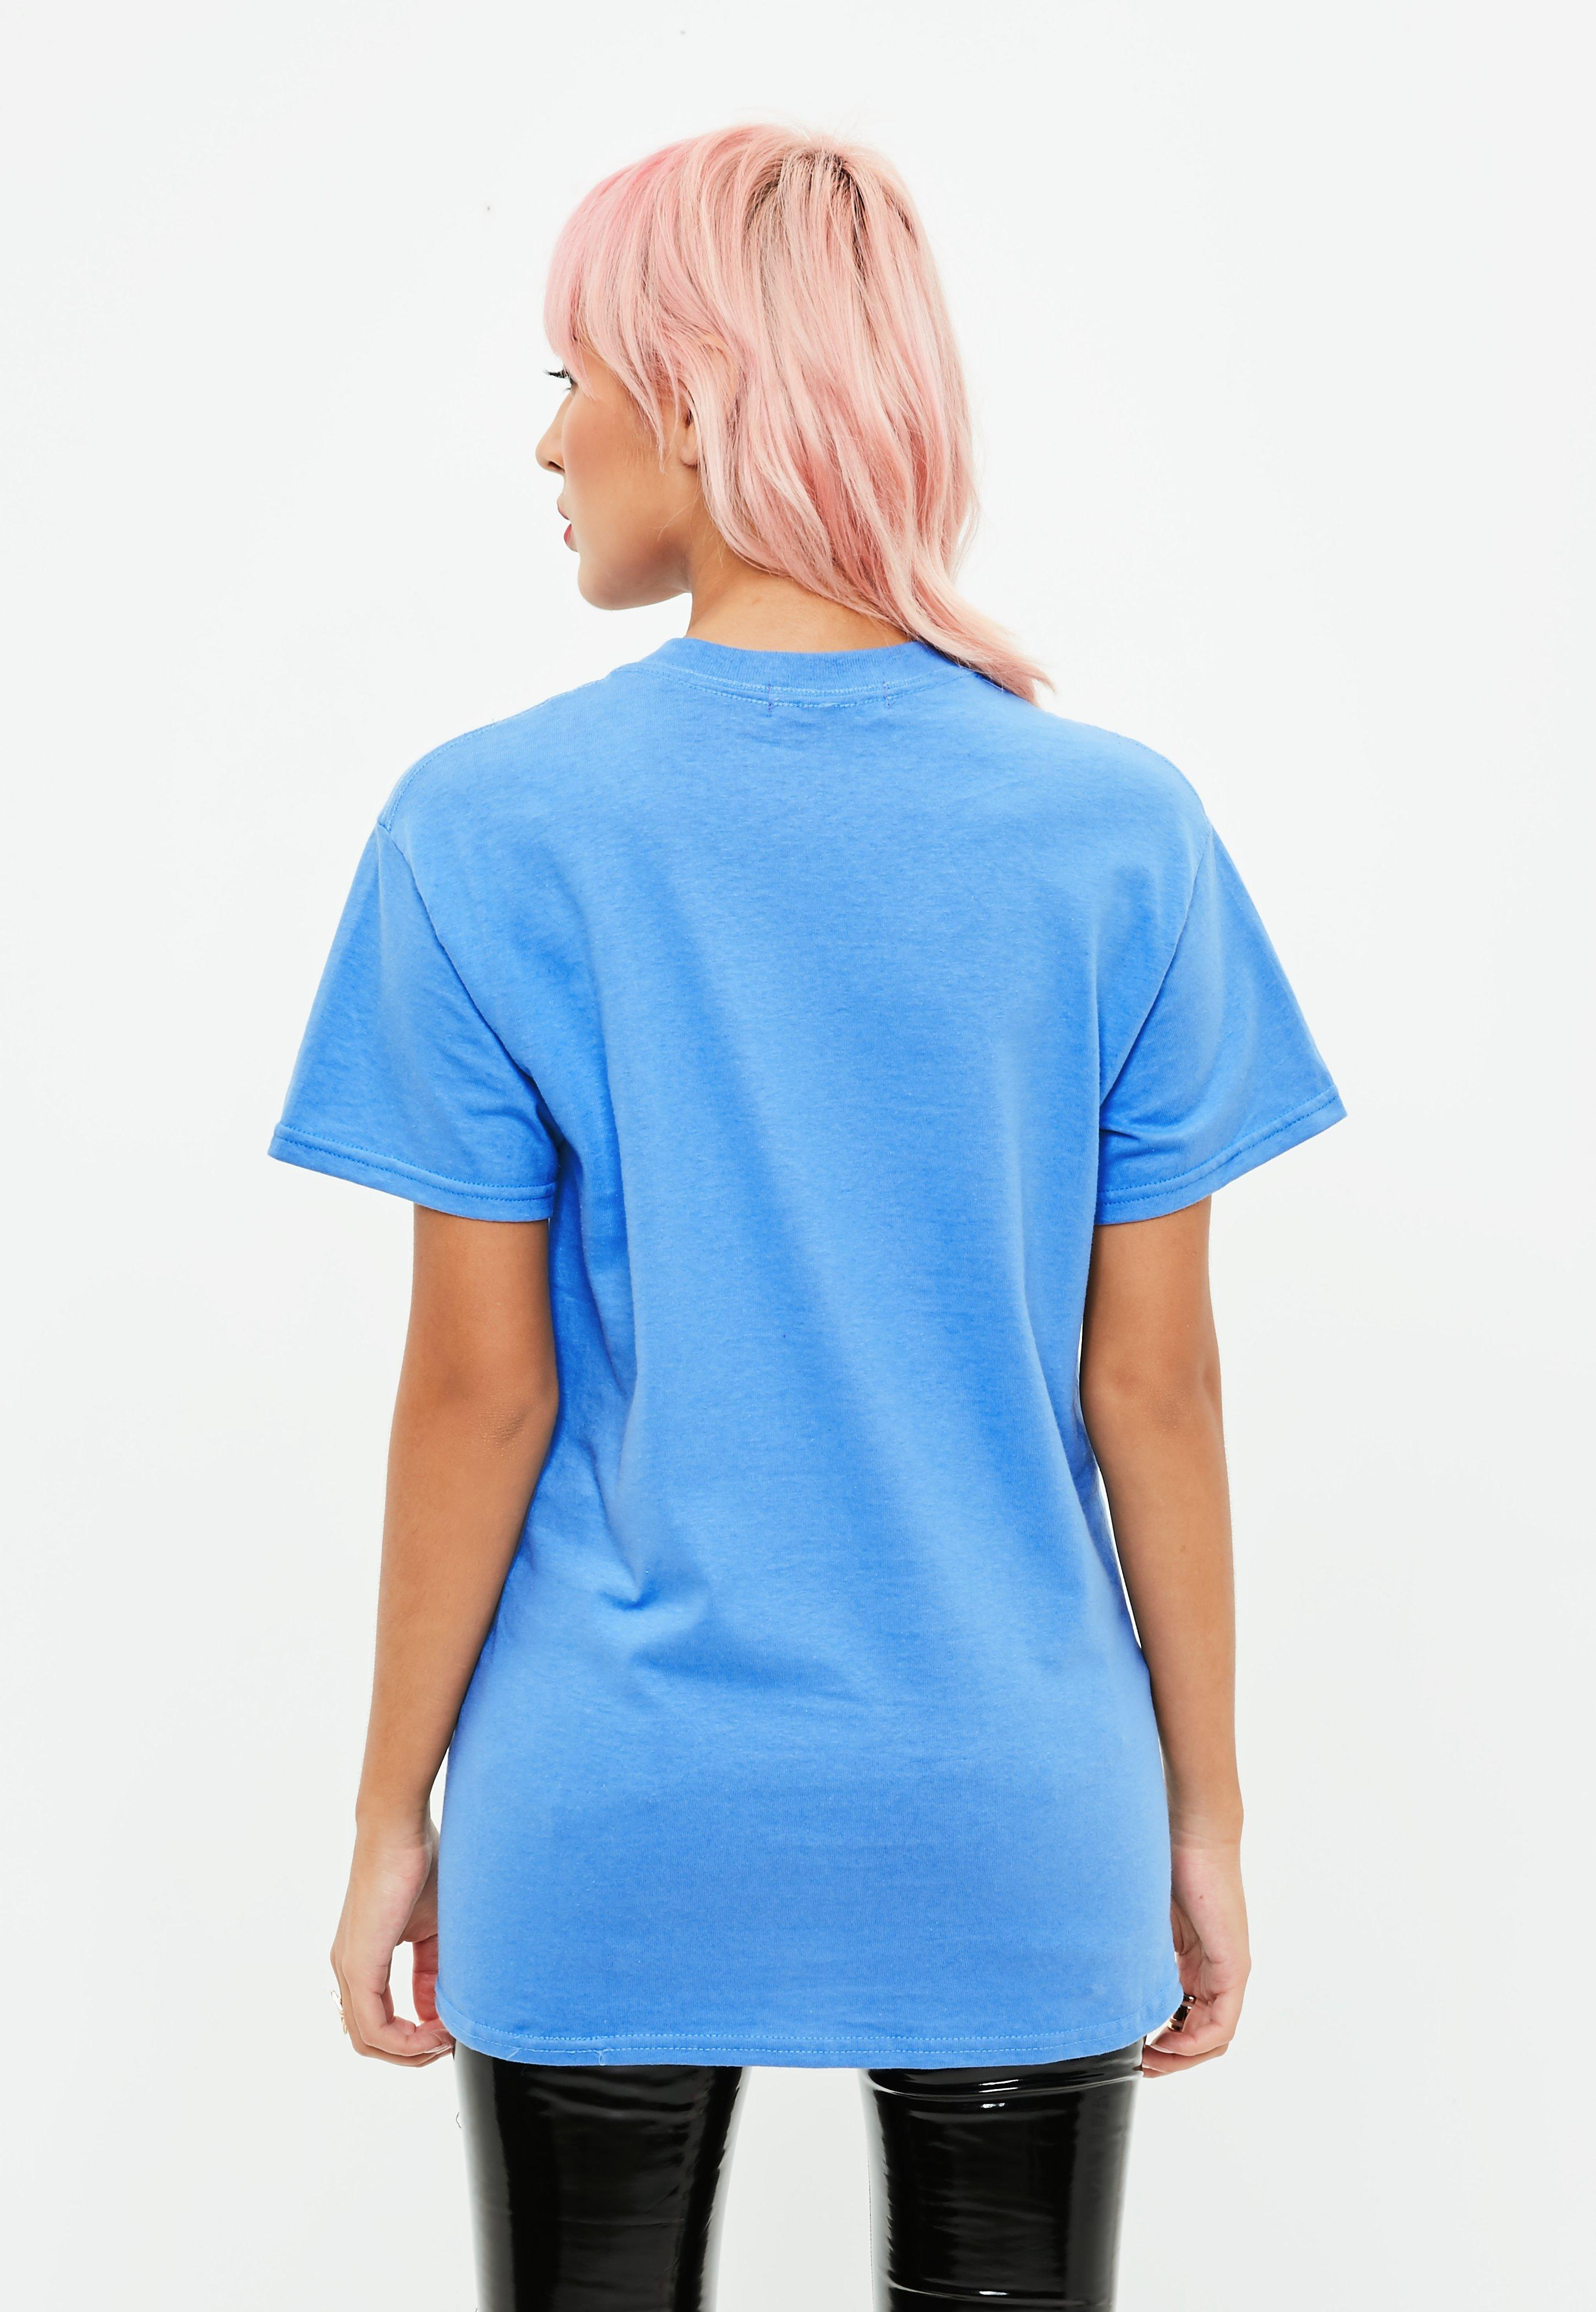 23a23bac3d39 Lyst - Missguided Blue Zurich 98 Slogan T-shirt in Blue